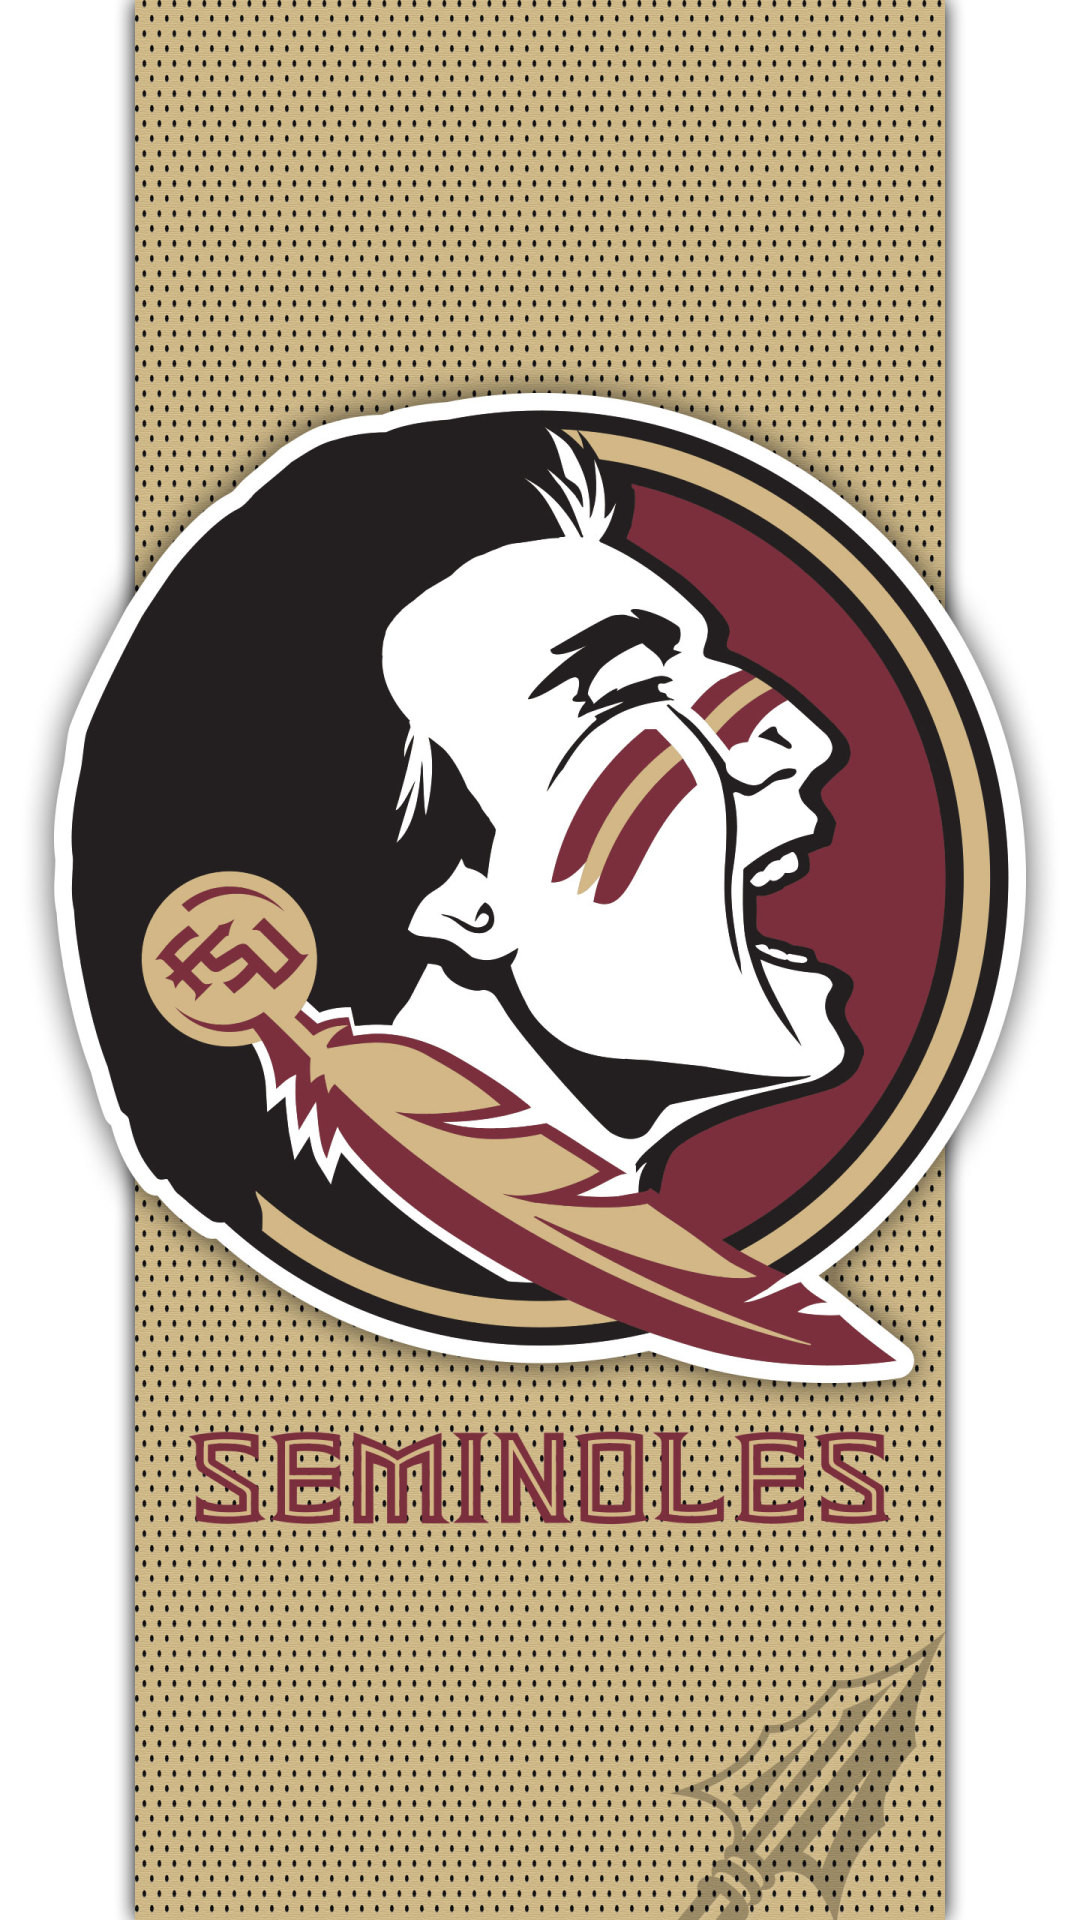 1080x1920 Florida State Seminoles A cell phone wallpaper based on the logo for the Florida  State Seminoles